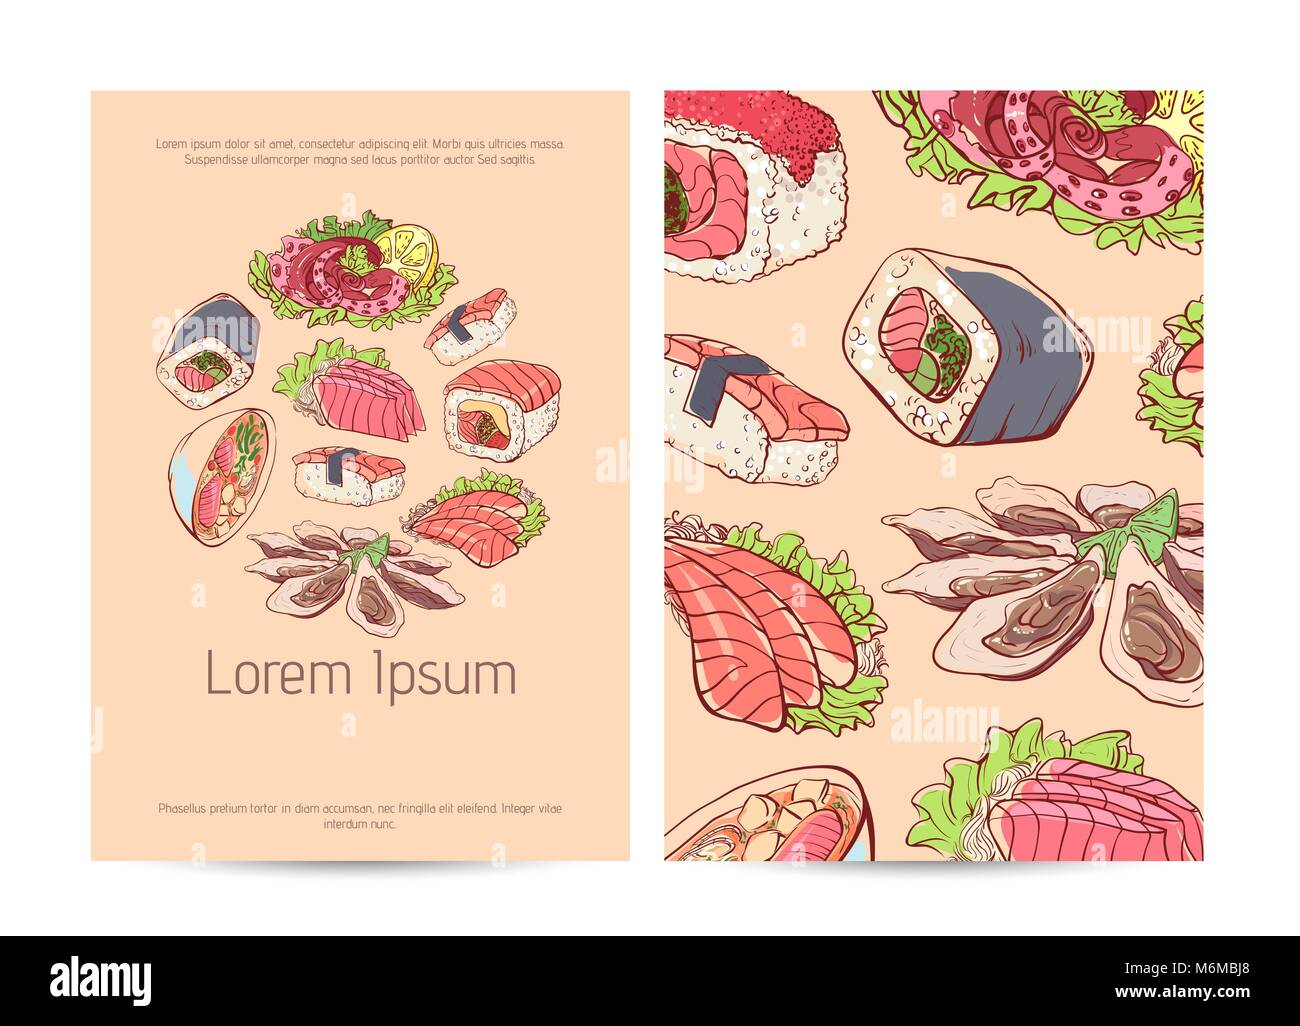 Japanese Restaurant Menu Cover With Famous Dishes Stock Vector Image Art Alamy